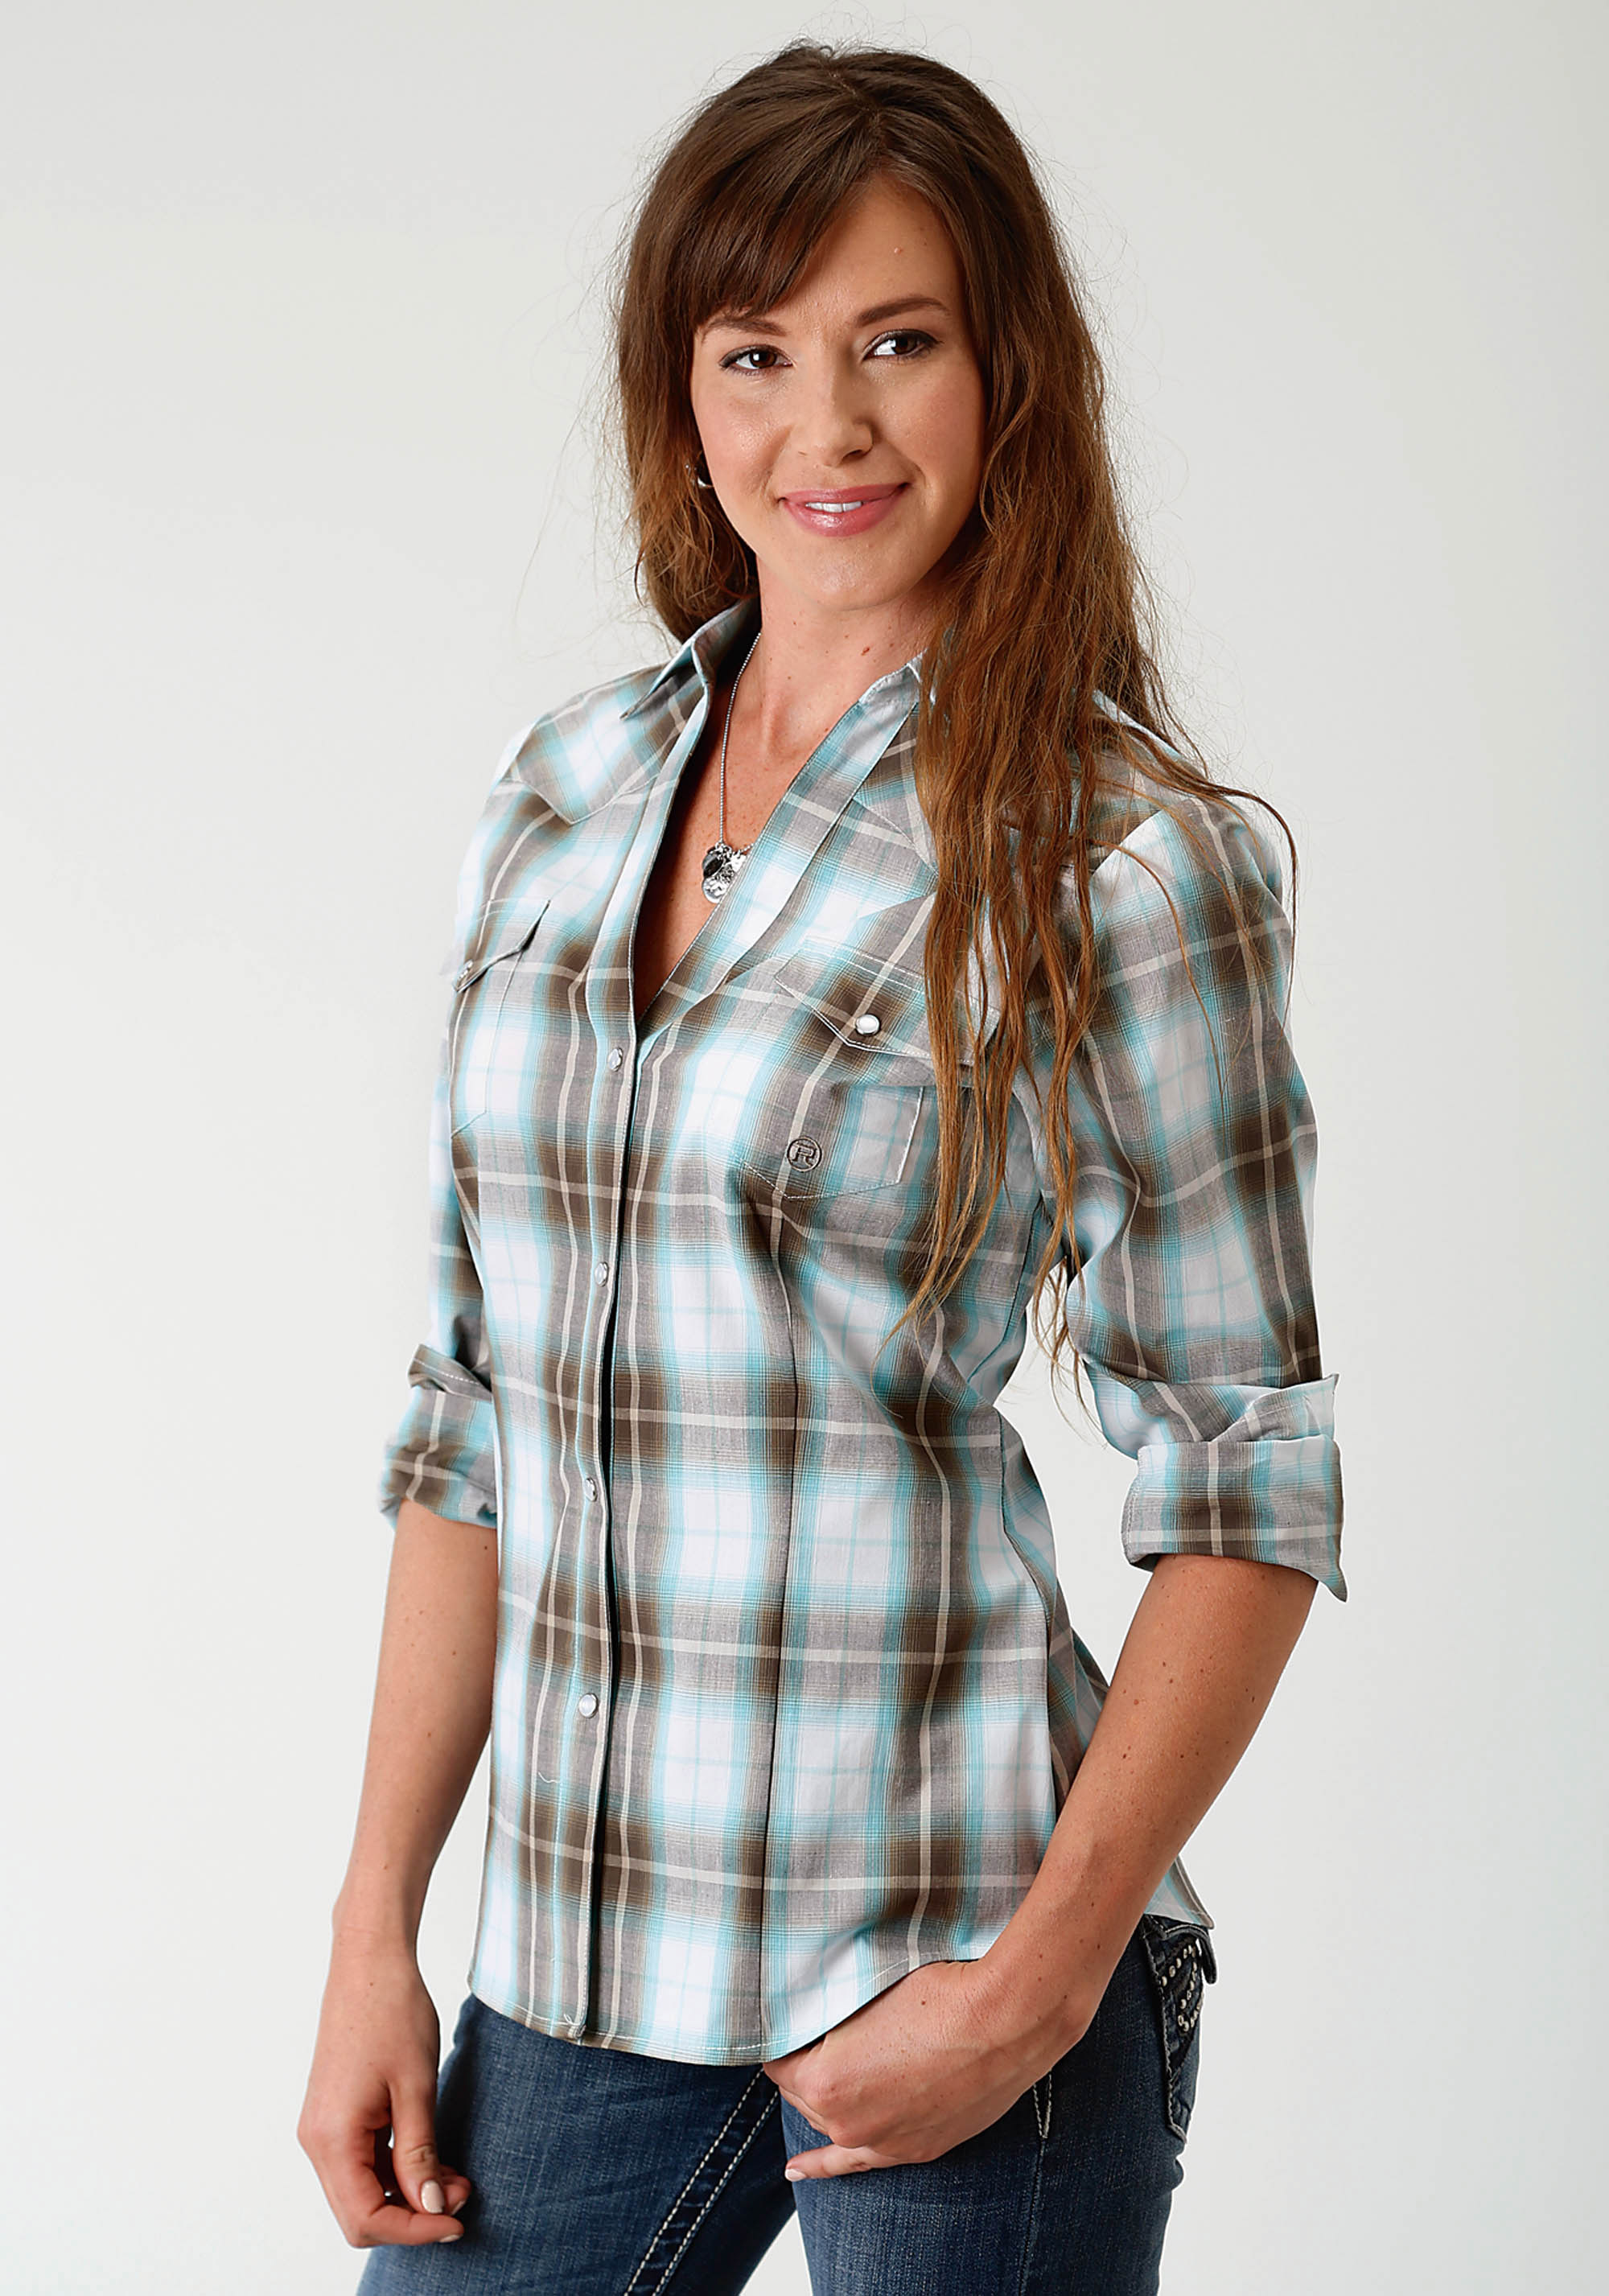 ad7eeb8733 Womens Plaid Western Shirt – EDGE Engineering and Consulting Limited